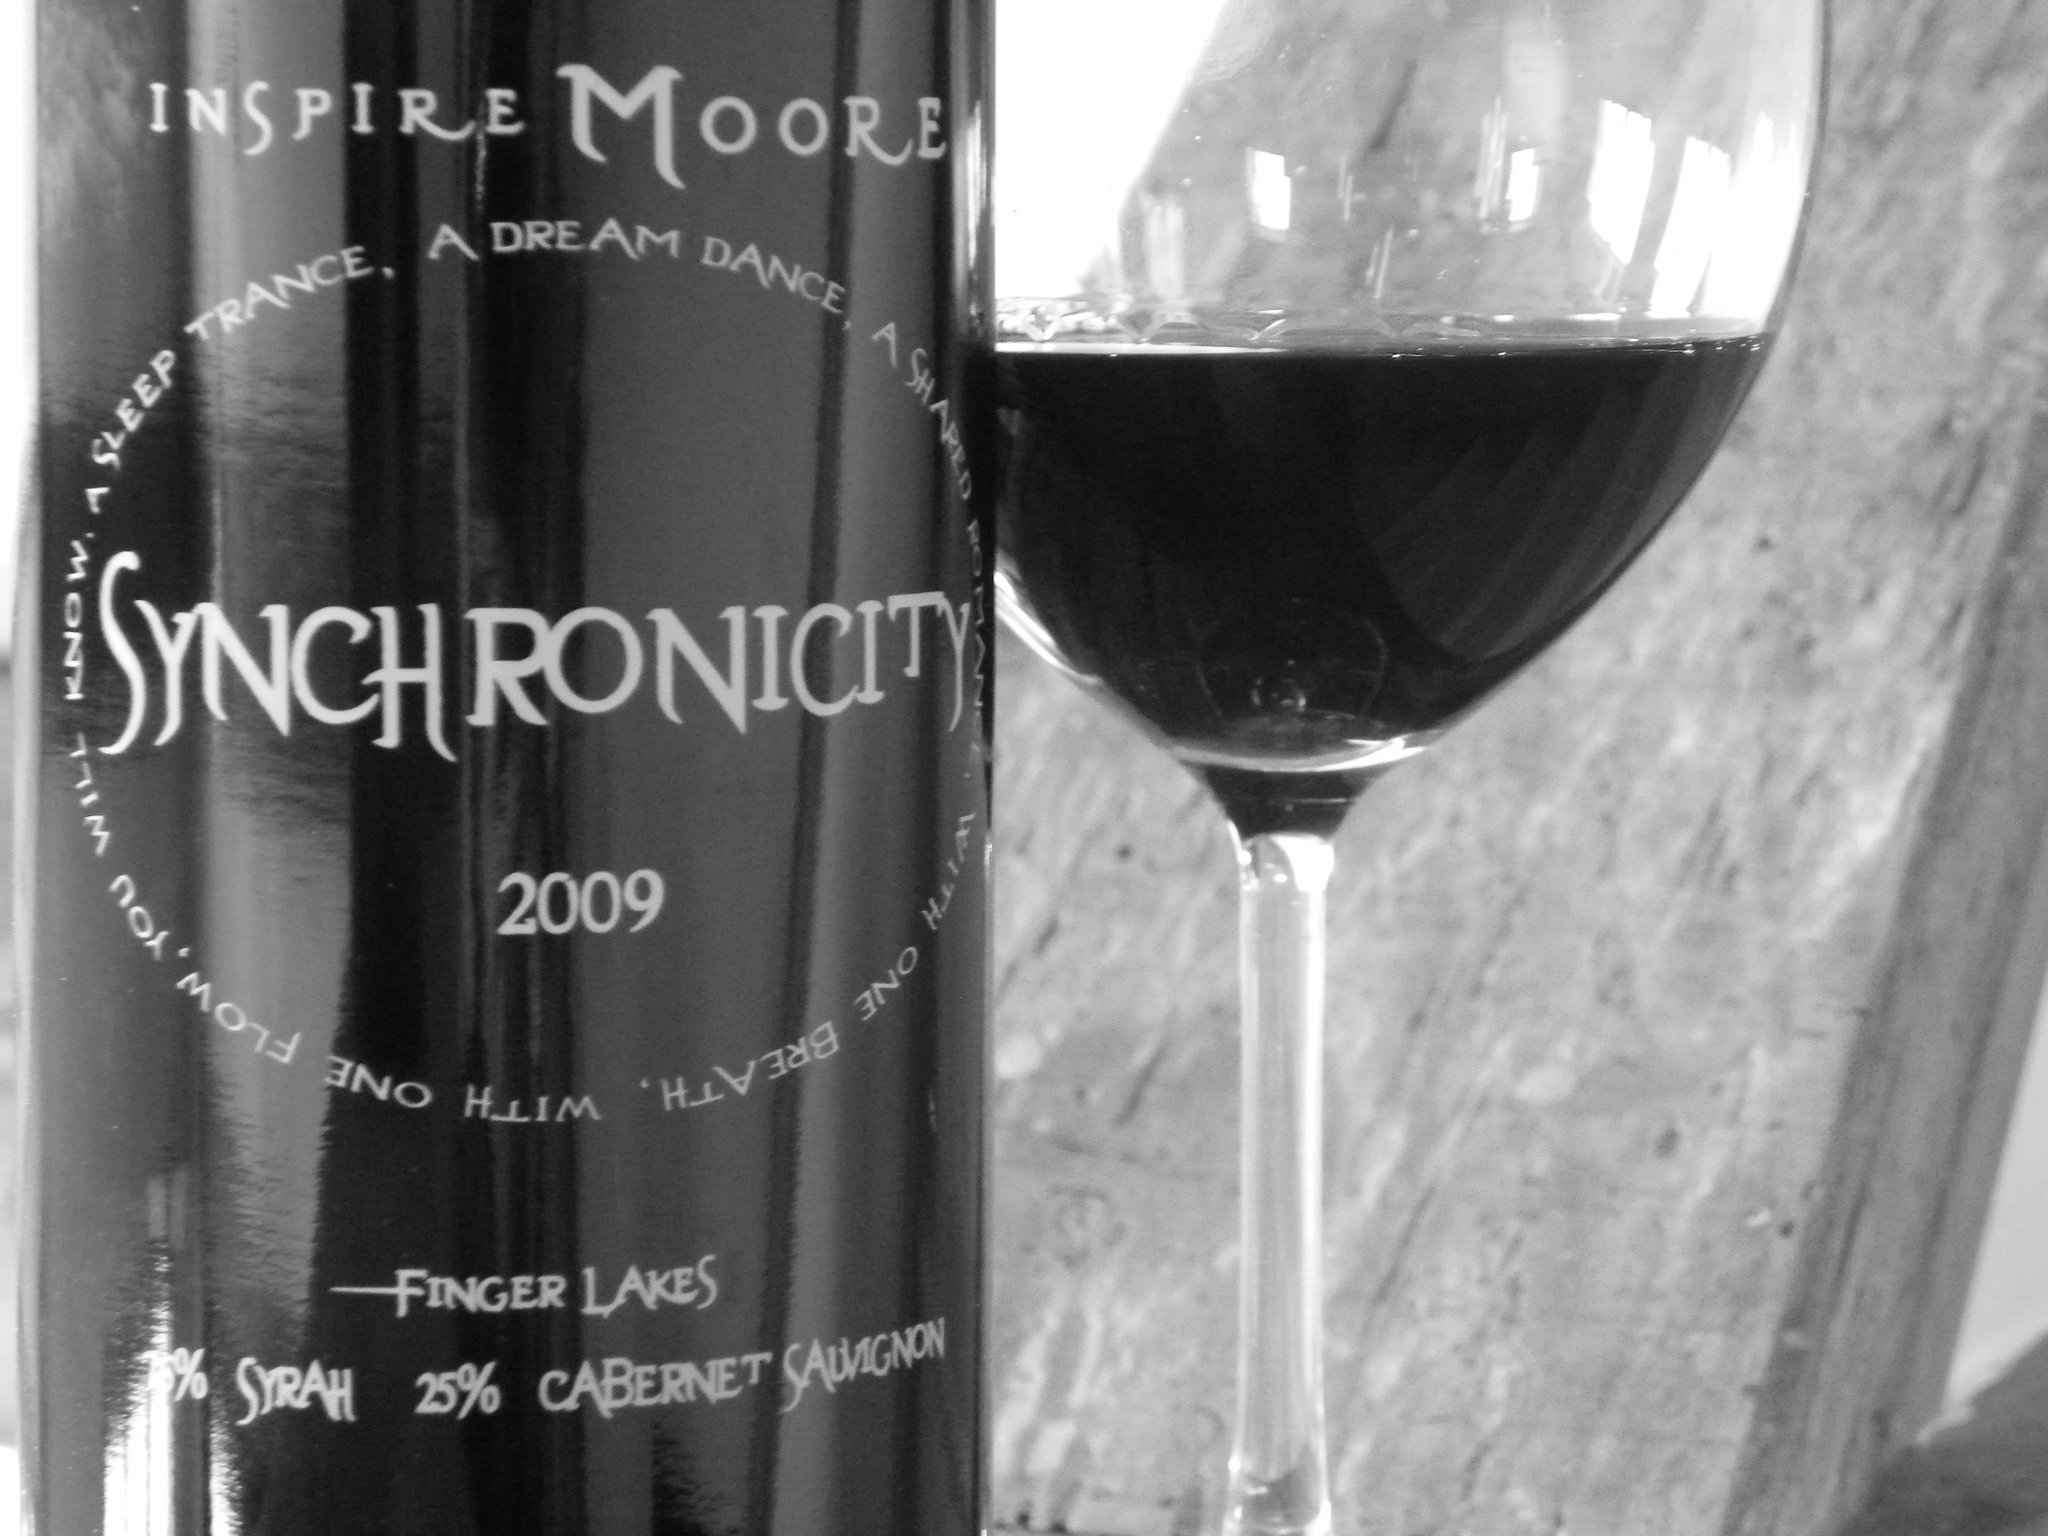 Synchronicity - Inspire Moore Winery